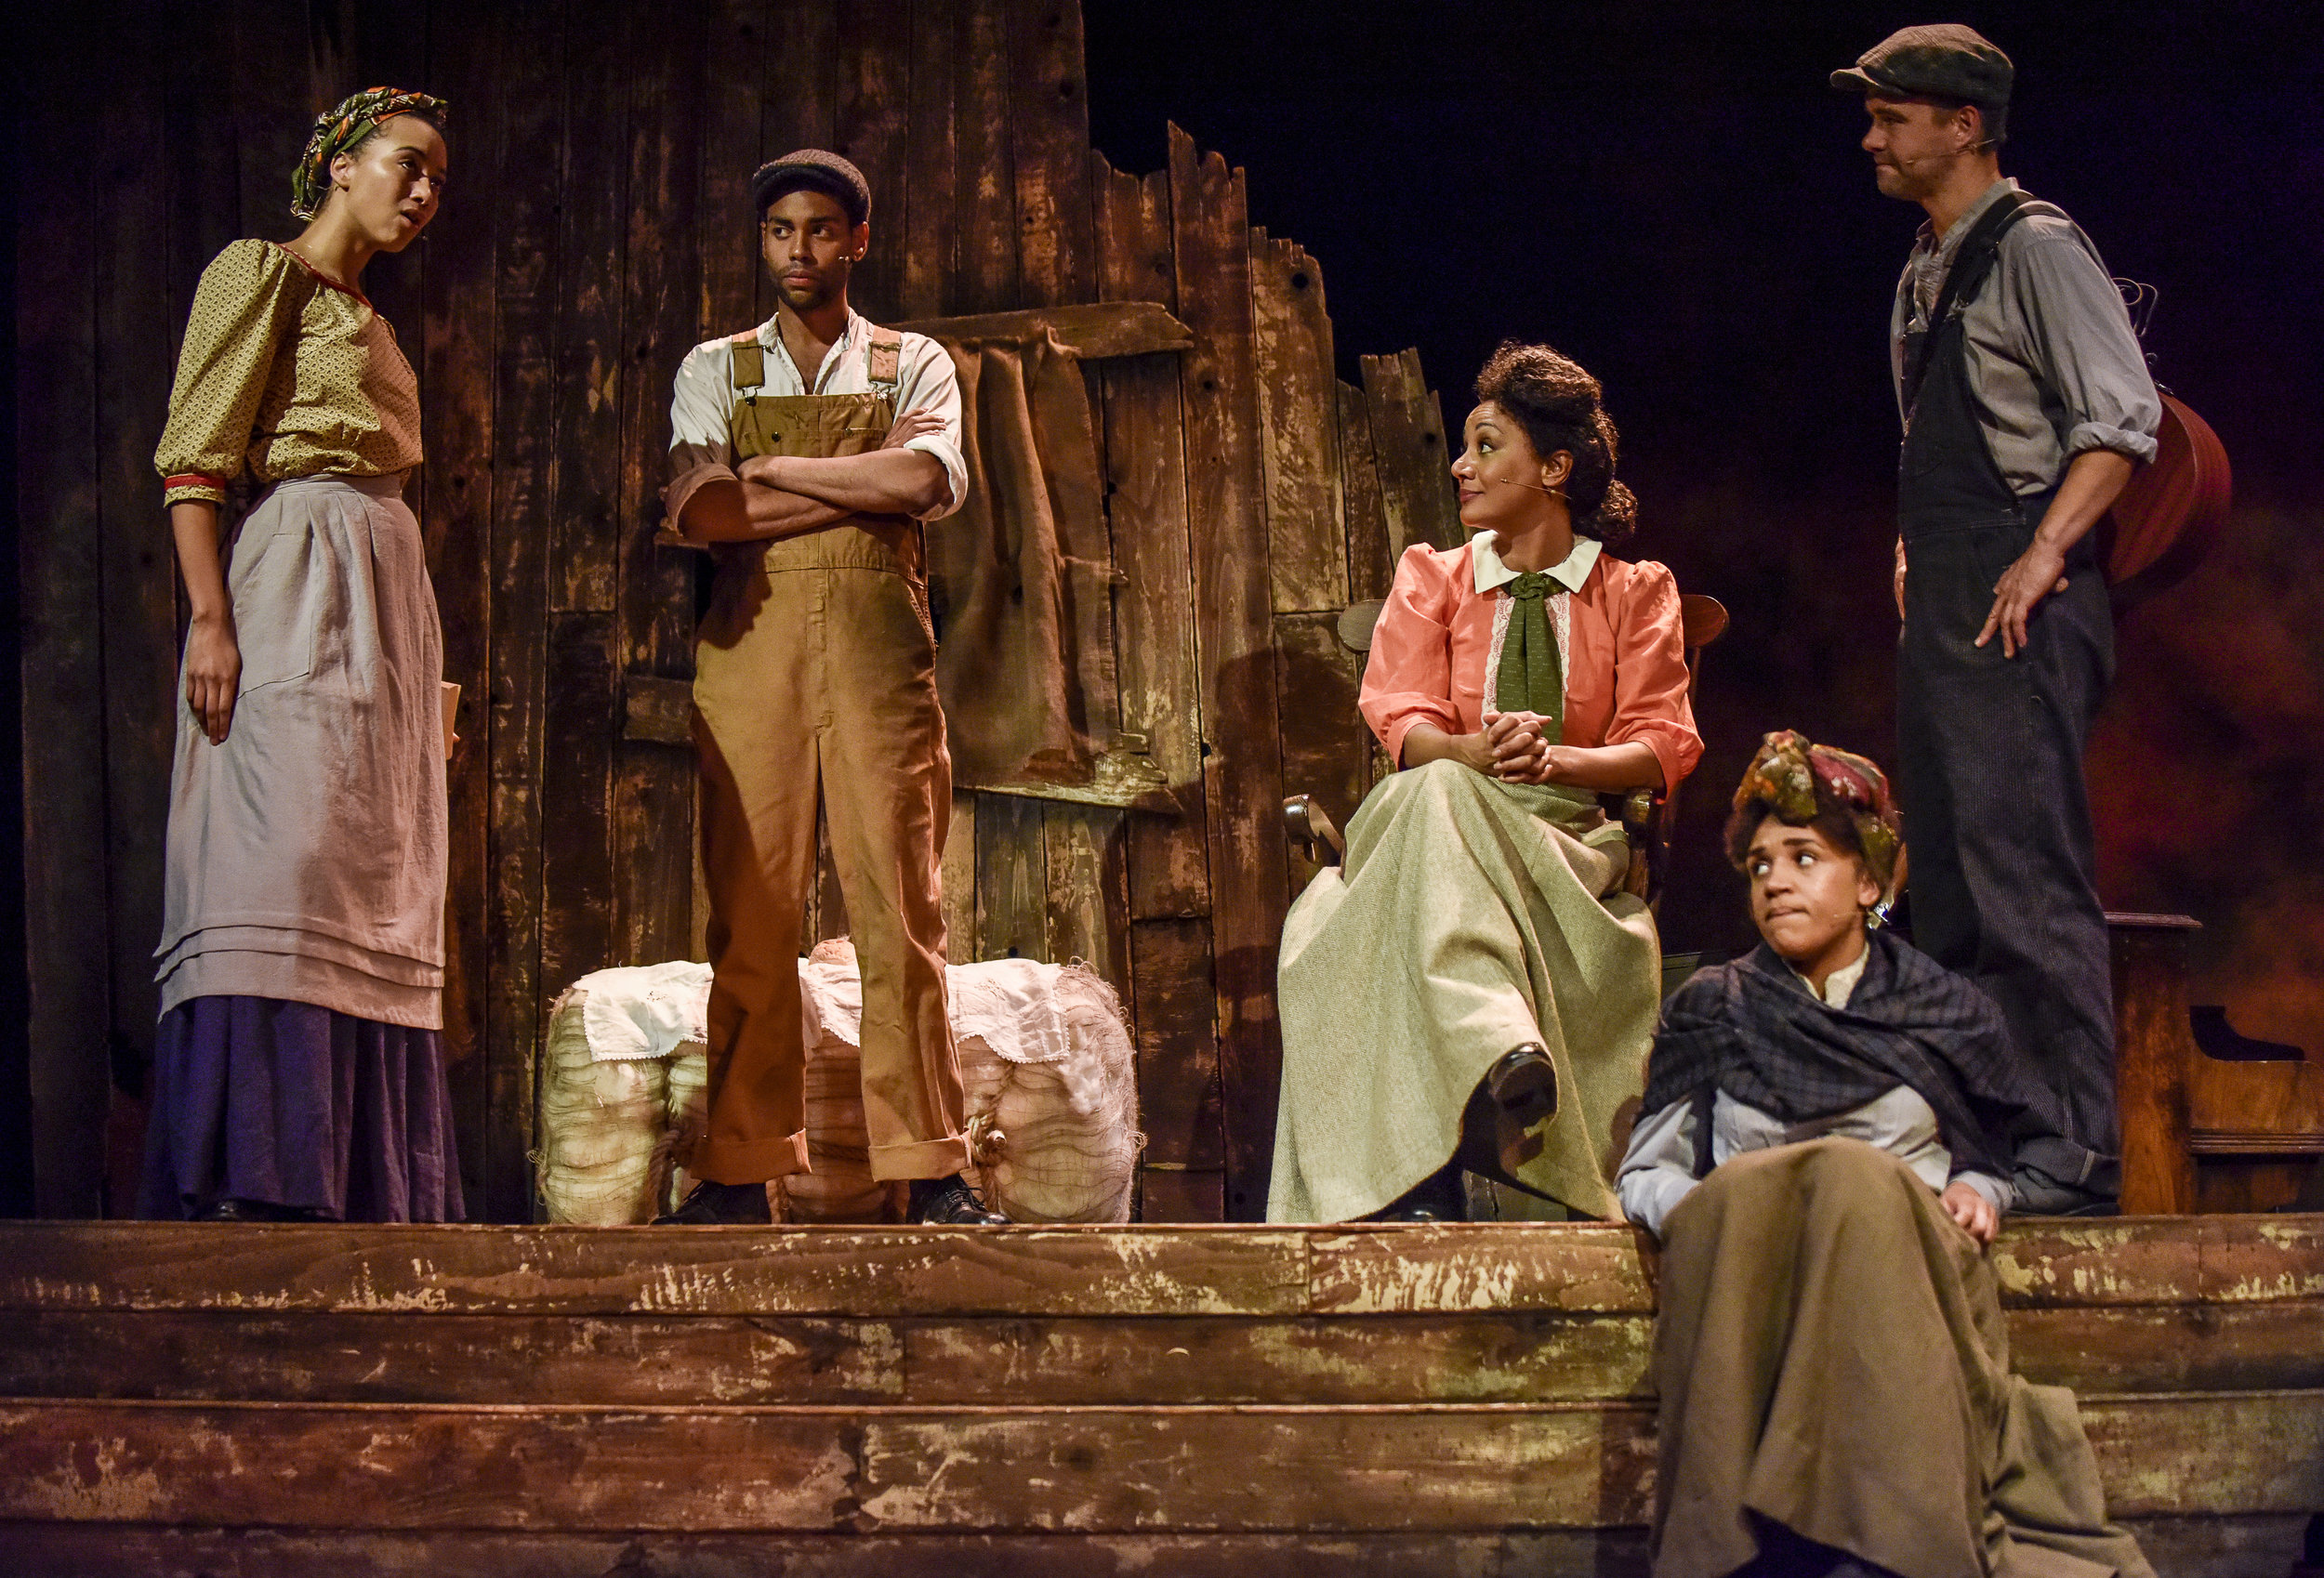 Lucy-Rose Atkins ( Emma Naomi ), Cal Jackson ( Oliver Wellington ), Elizabth Gurley Flynn ( Tupele Dorgu ), Abbie Williams ( Sophie Mercell ) and Joe Ettor ( Rupert Hill )in '  BREAD & ROSES  ' (22 Jun - 7 Jul 2018) at  Oldham Coliseum Theatre     Photo by  Joel Chester Fildes , courtesy of Oldham Coliseum Theatre